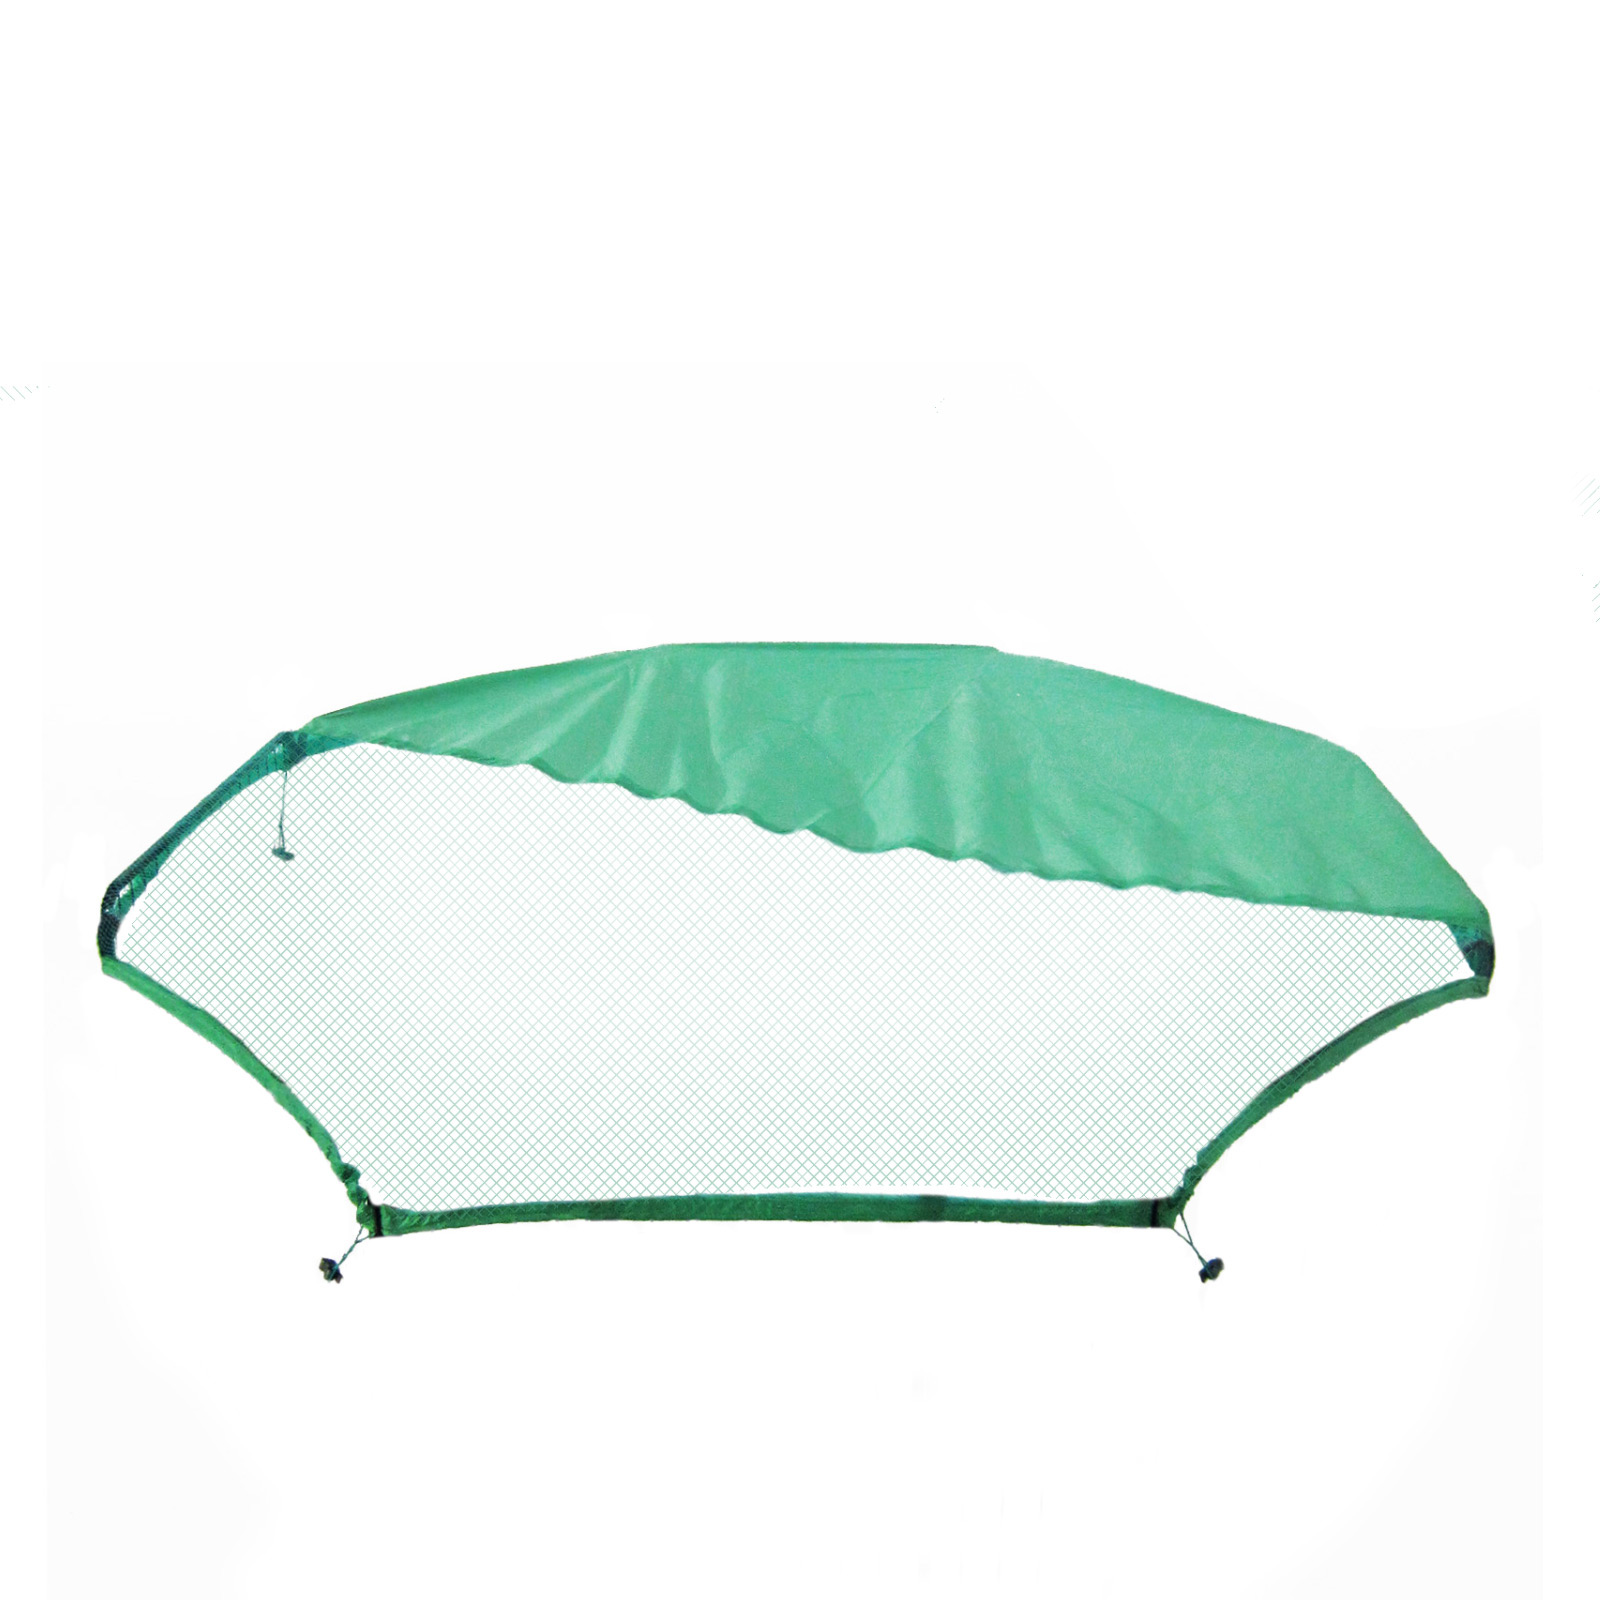 "32"" Net Cover for Playpen - Green"